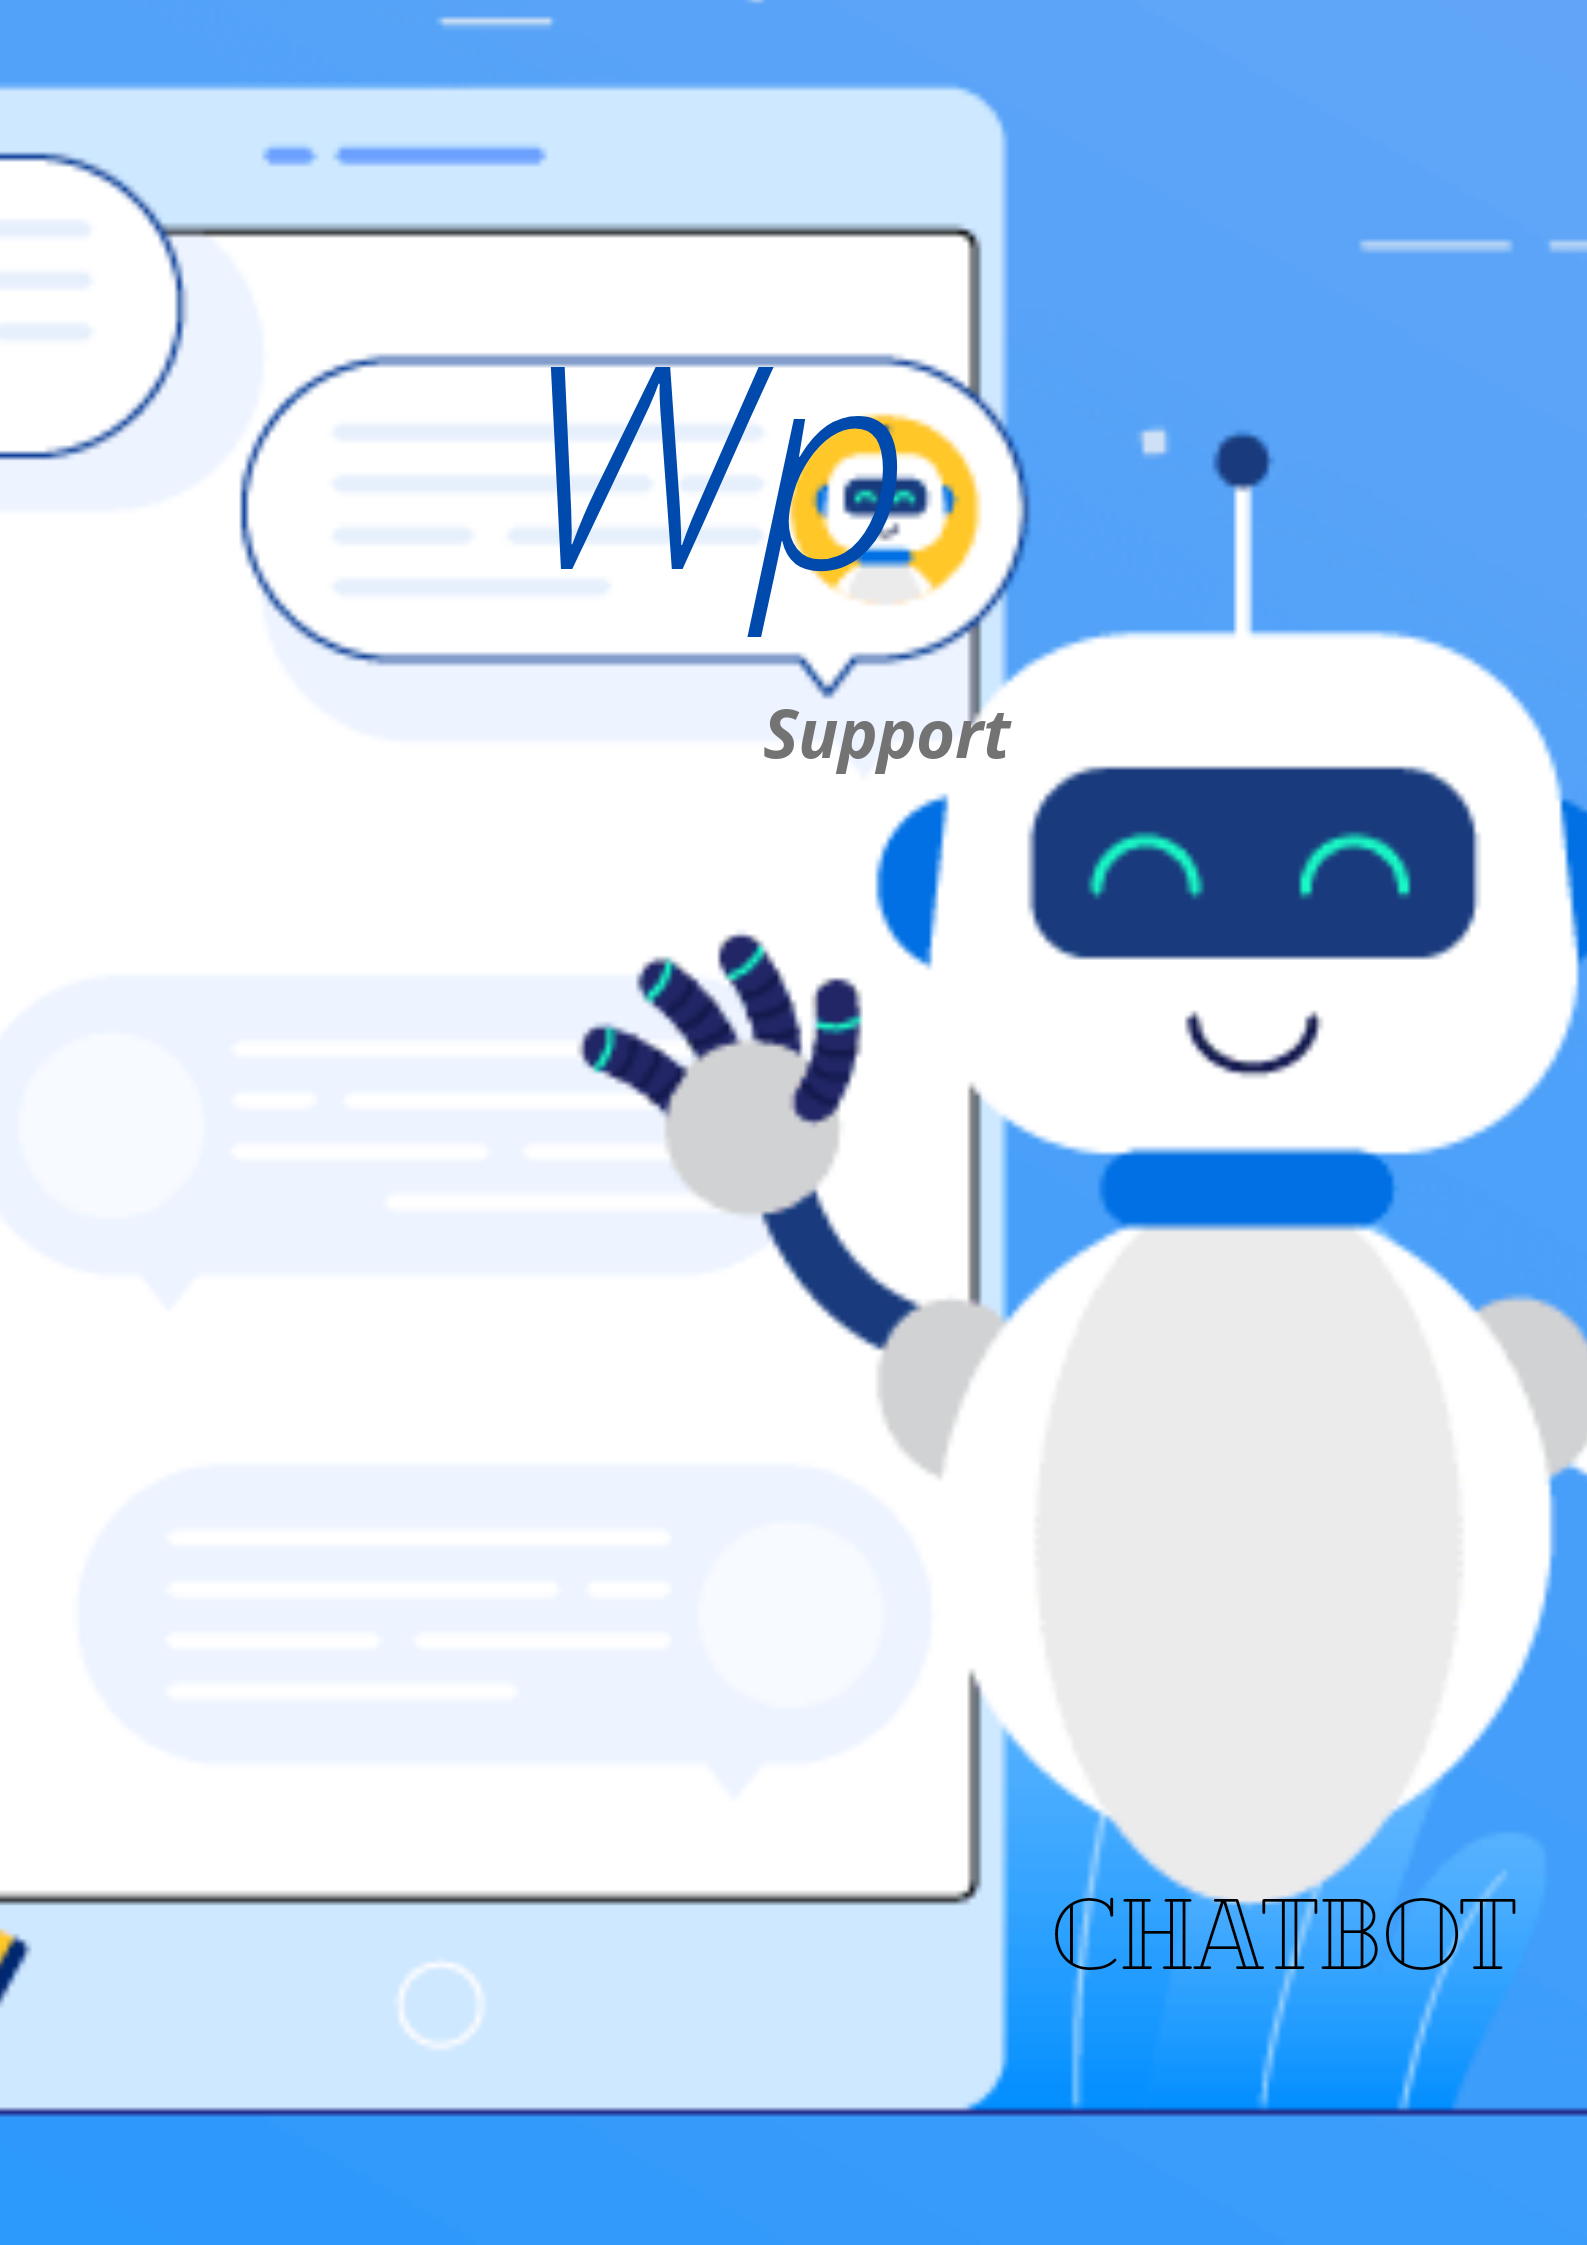 chatbot support supports wordpress